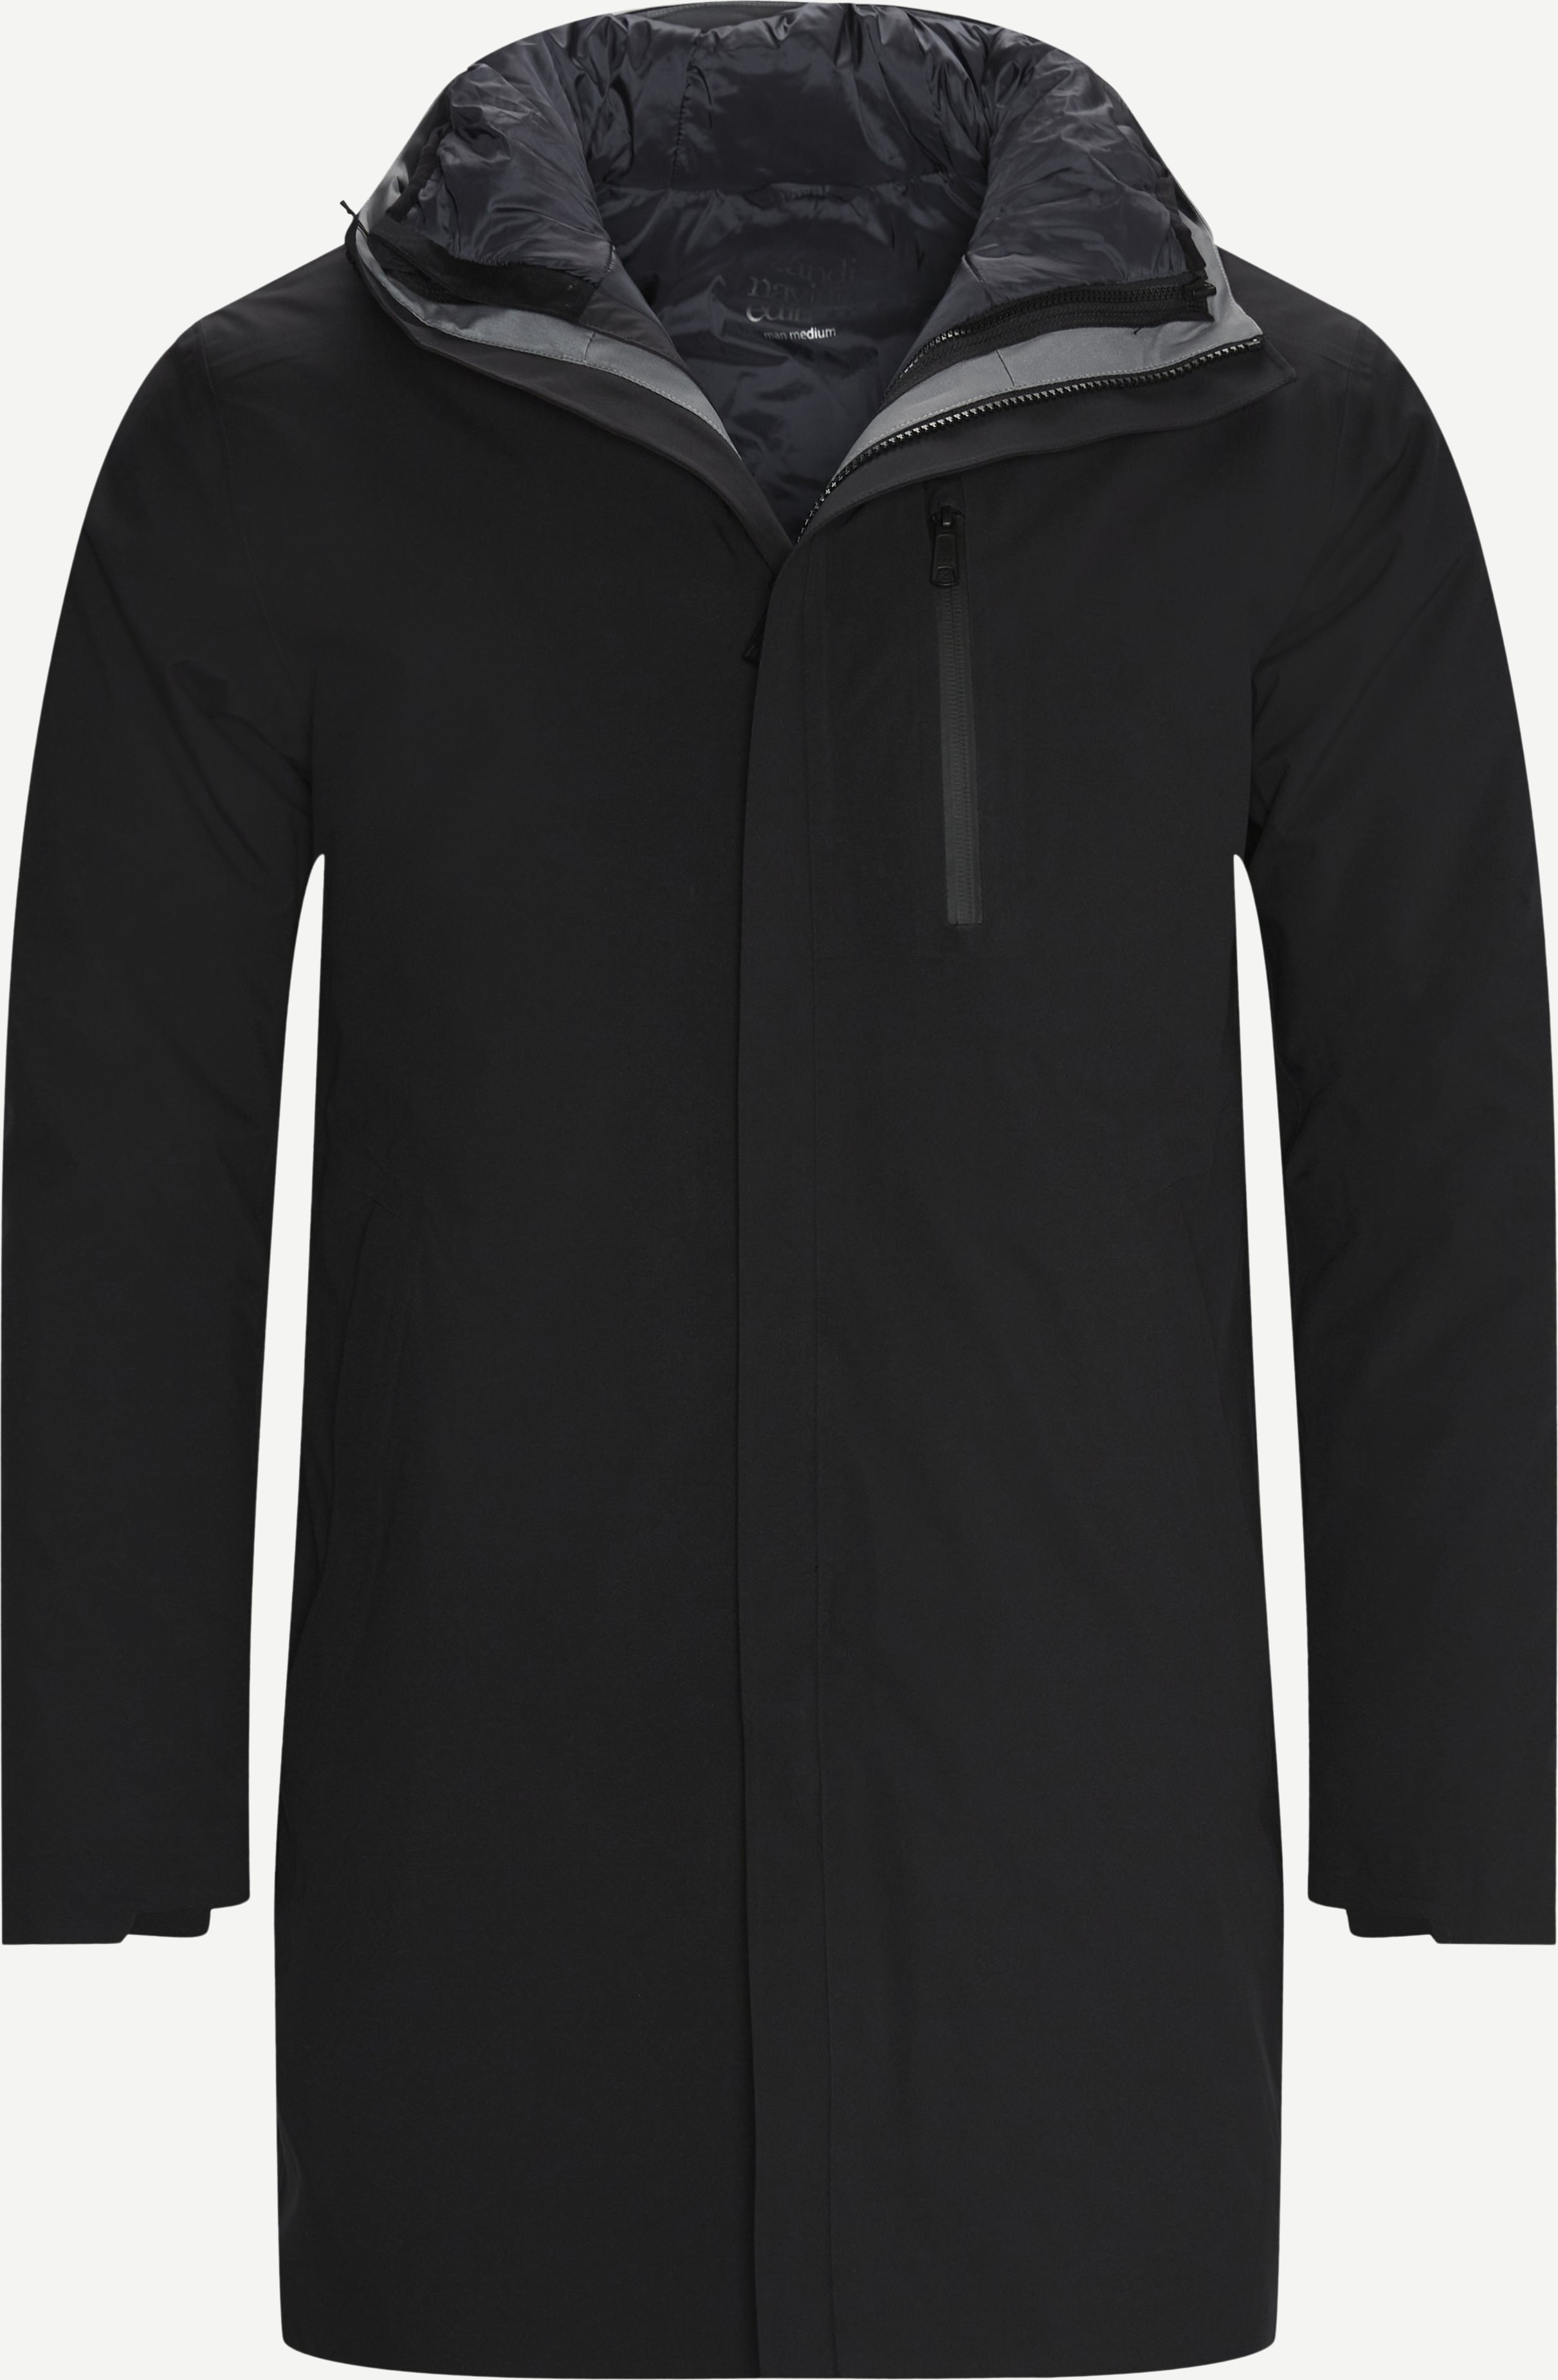 Urban Jacket - Jackets - Regular - Black